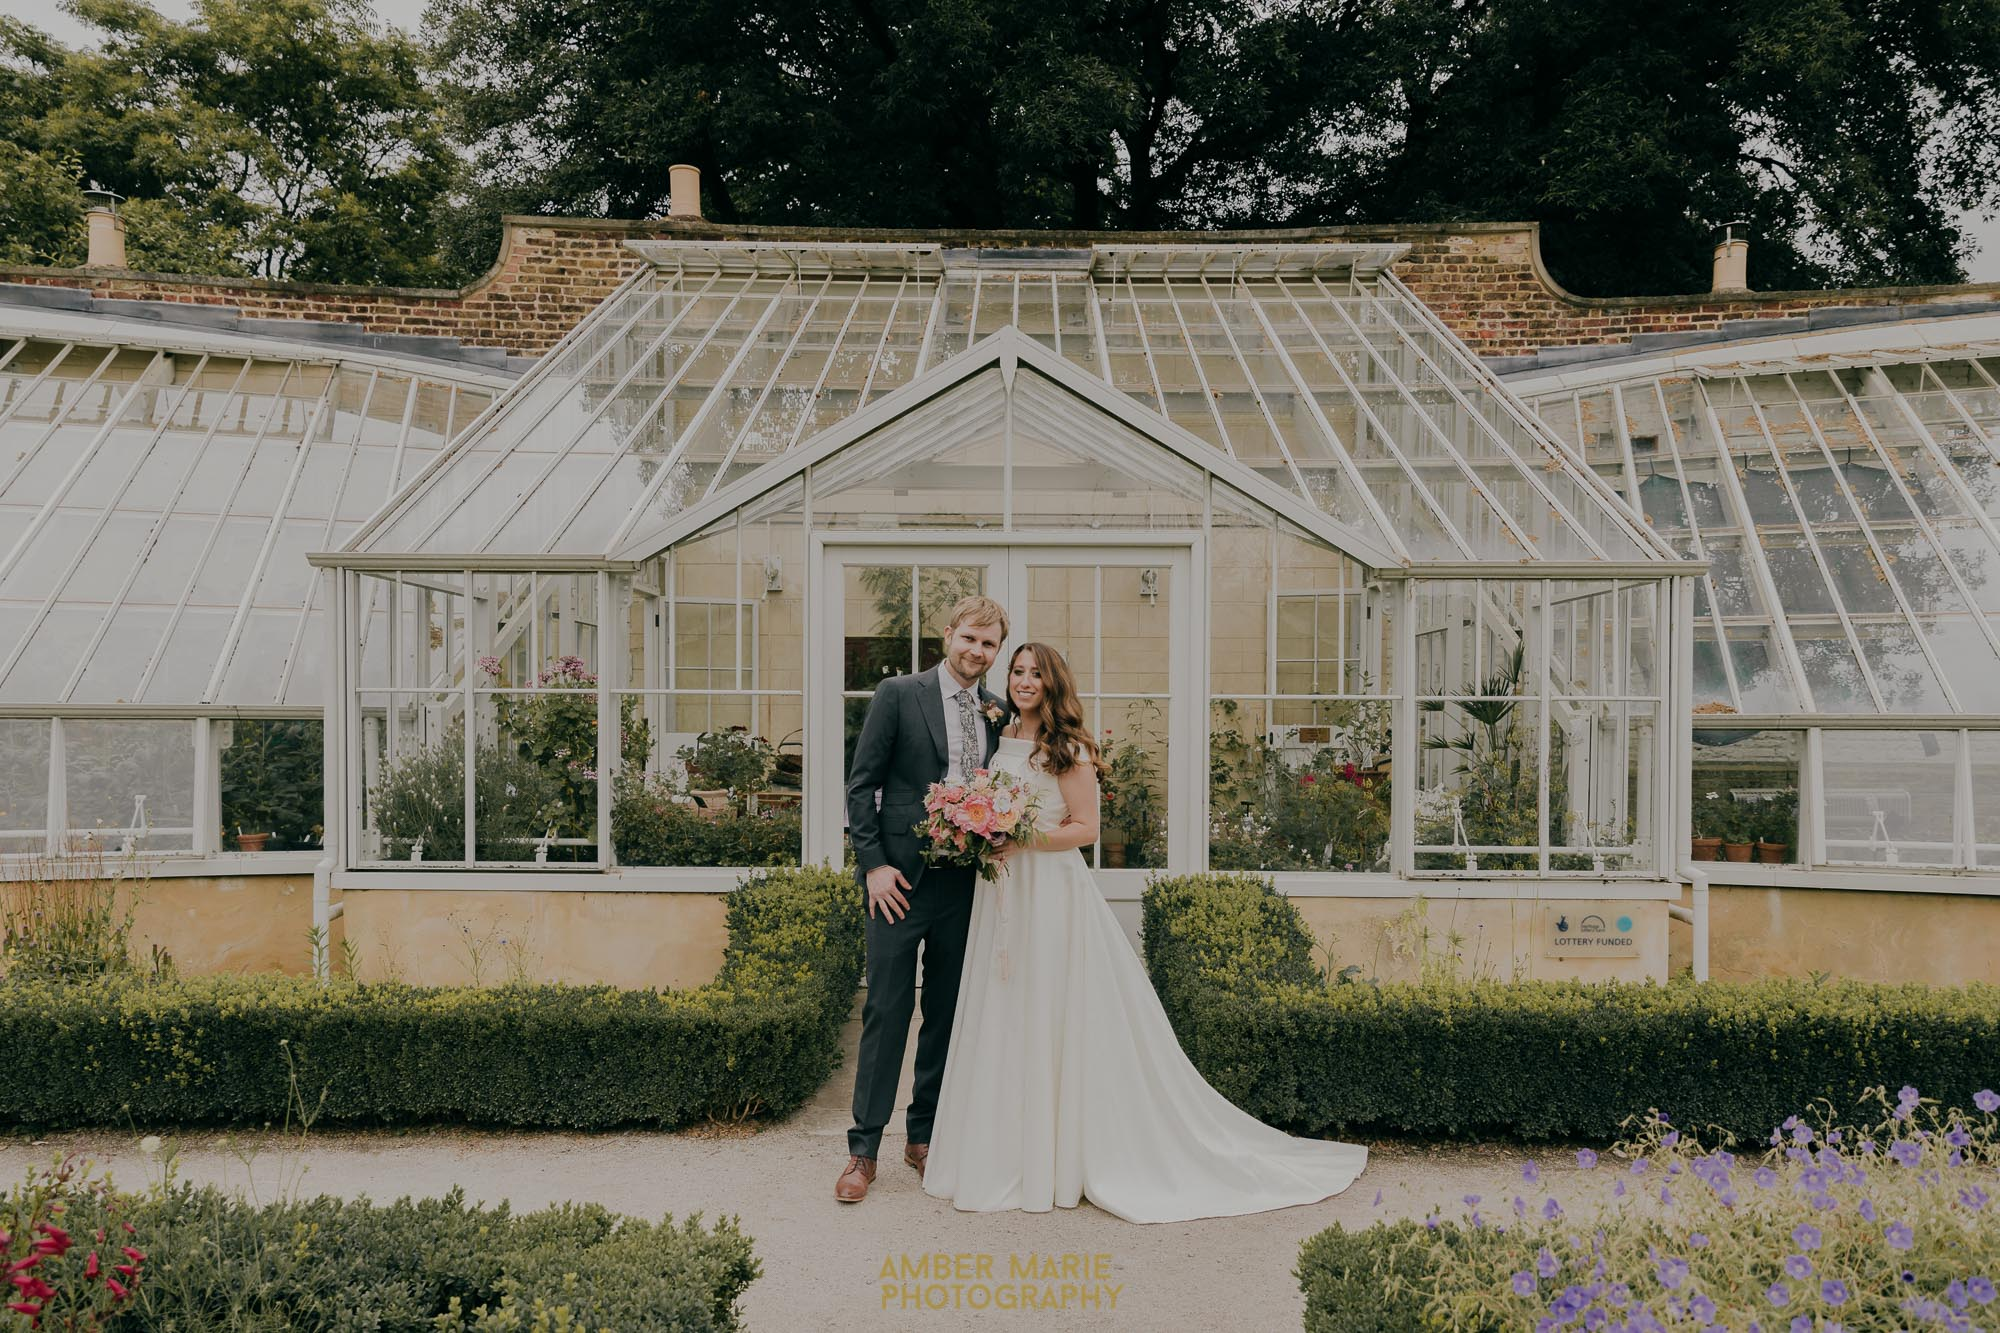 Relaxed portraits of bride and groom in The Walled Garden at Fulham Palace